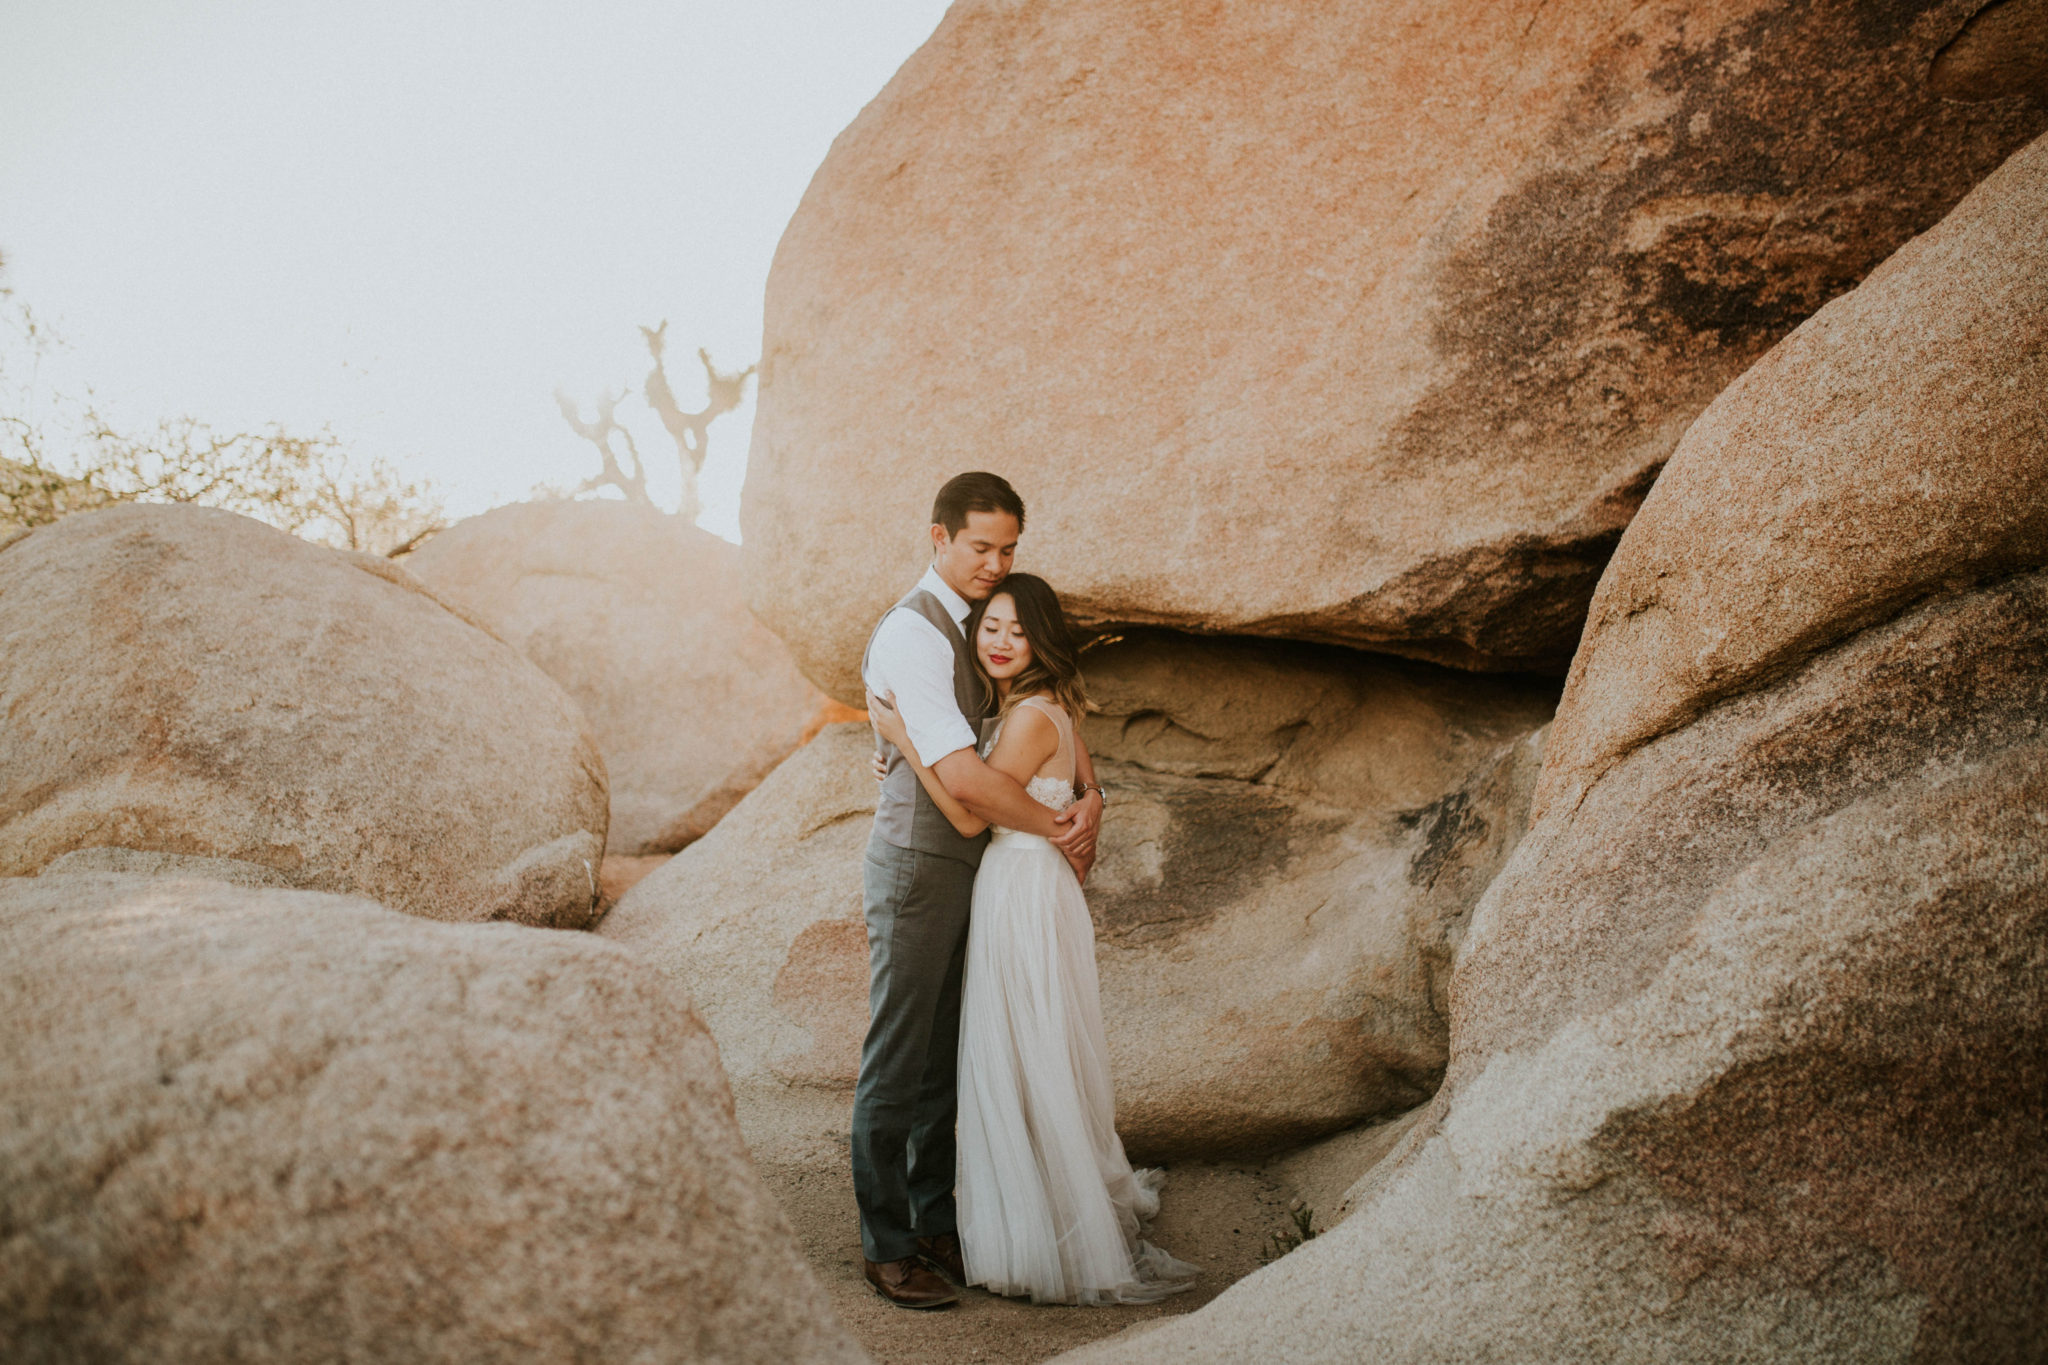 Mandy & Joey Joshua Tree Elopement California Wedding Photographer-186